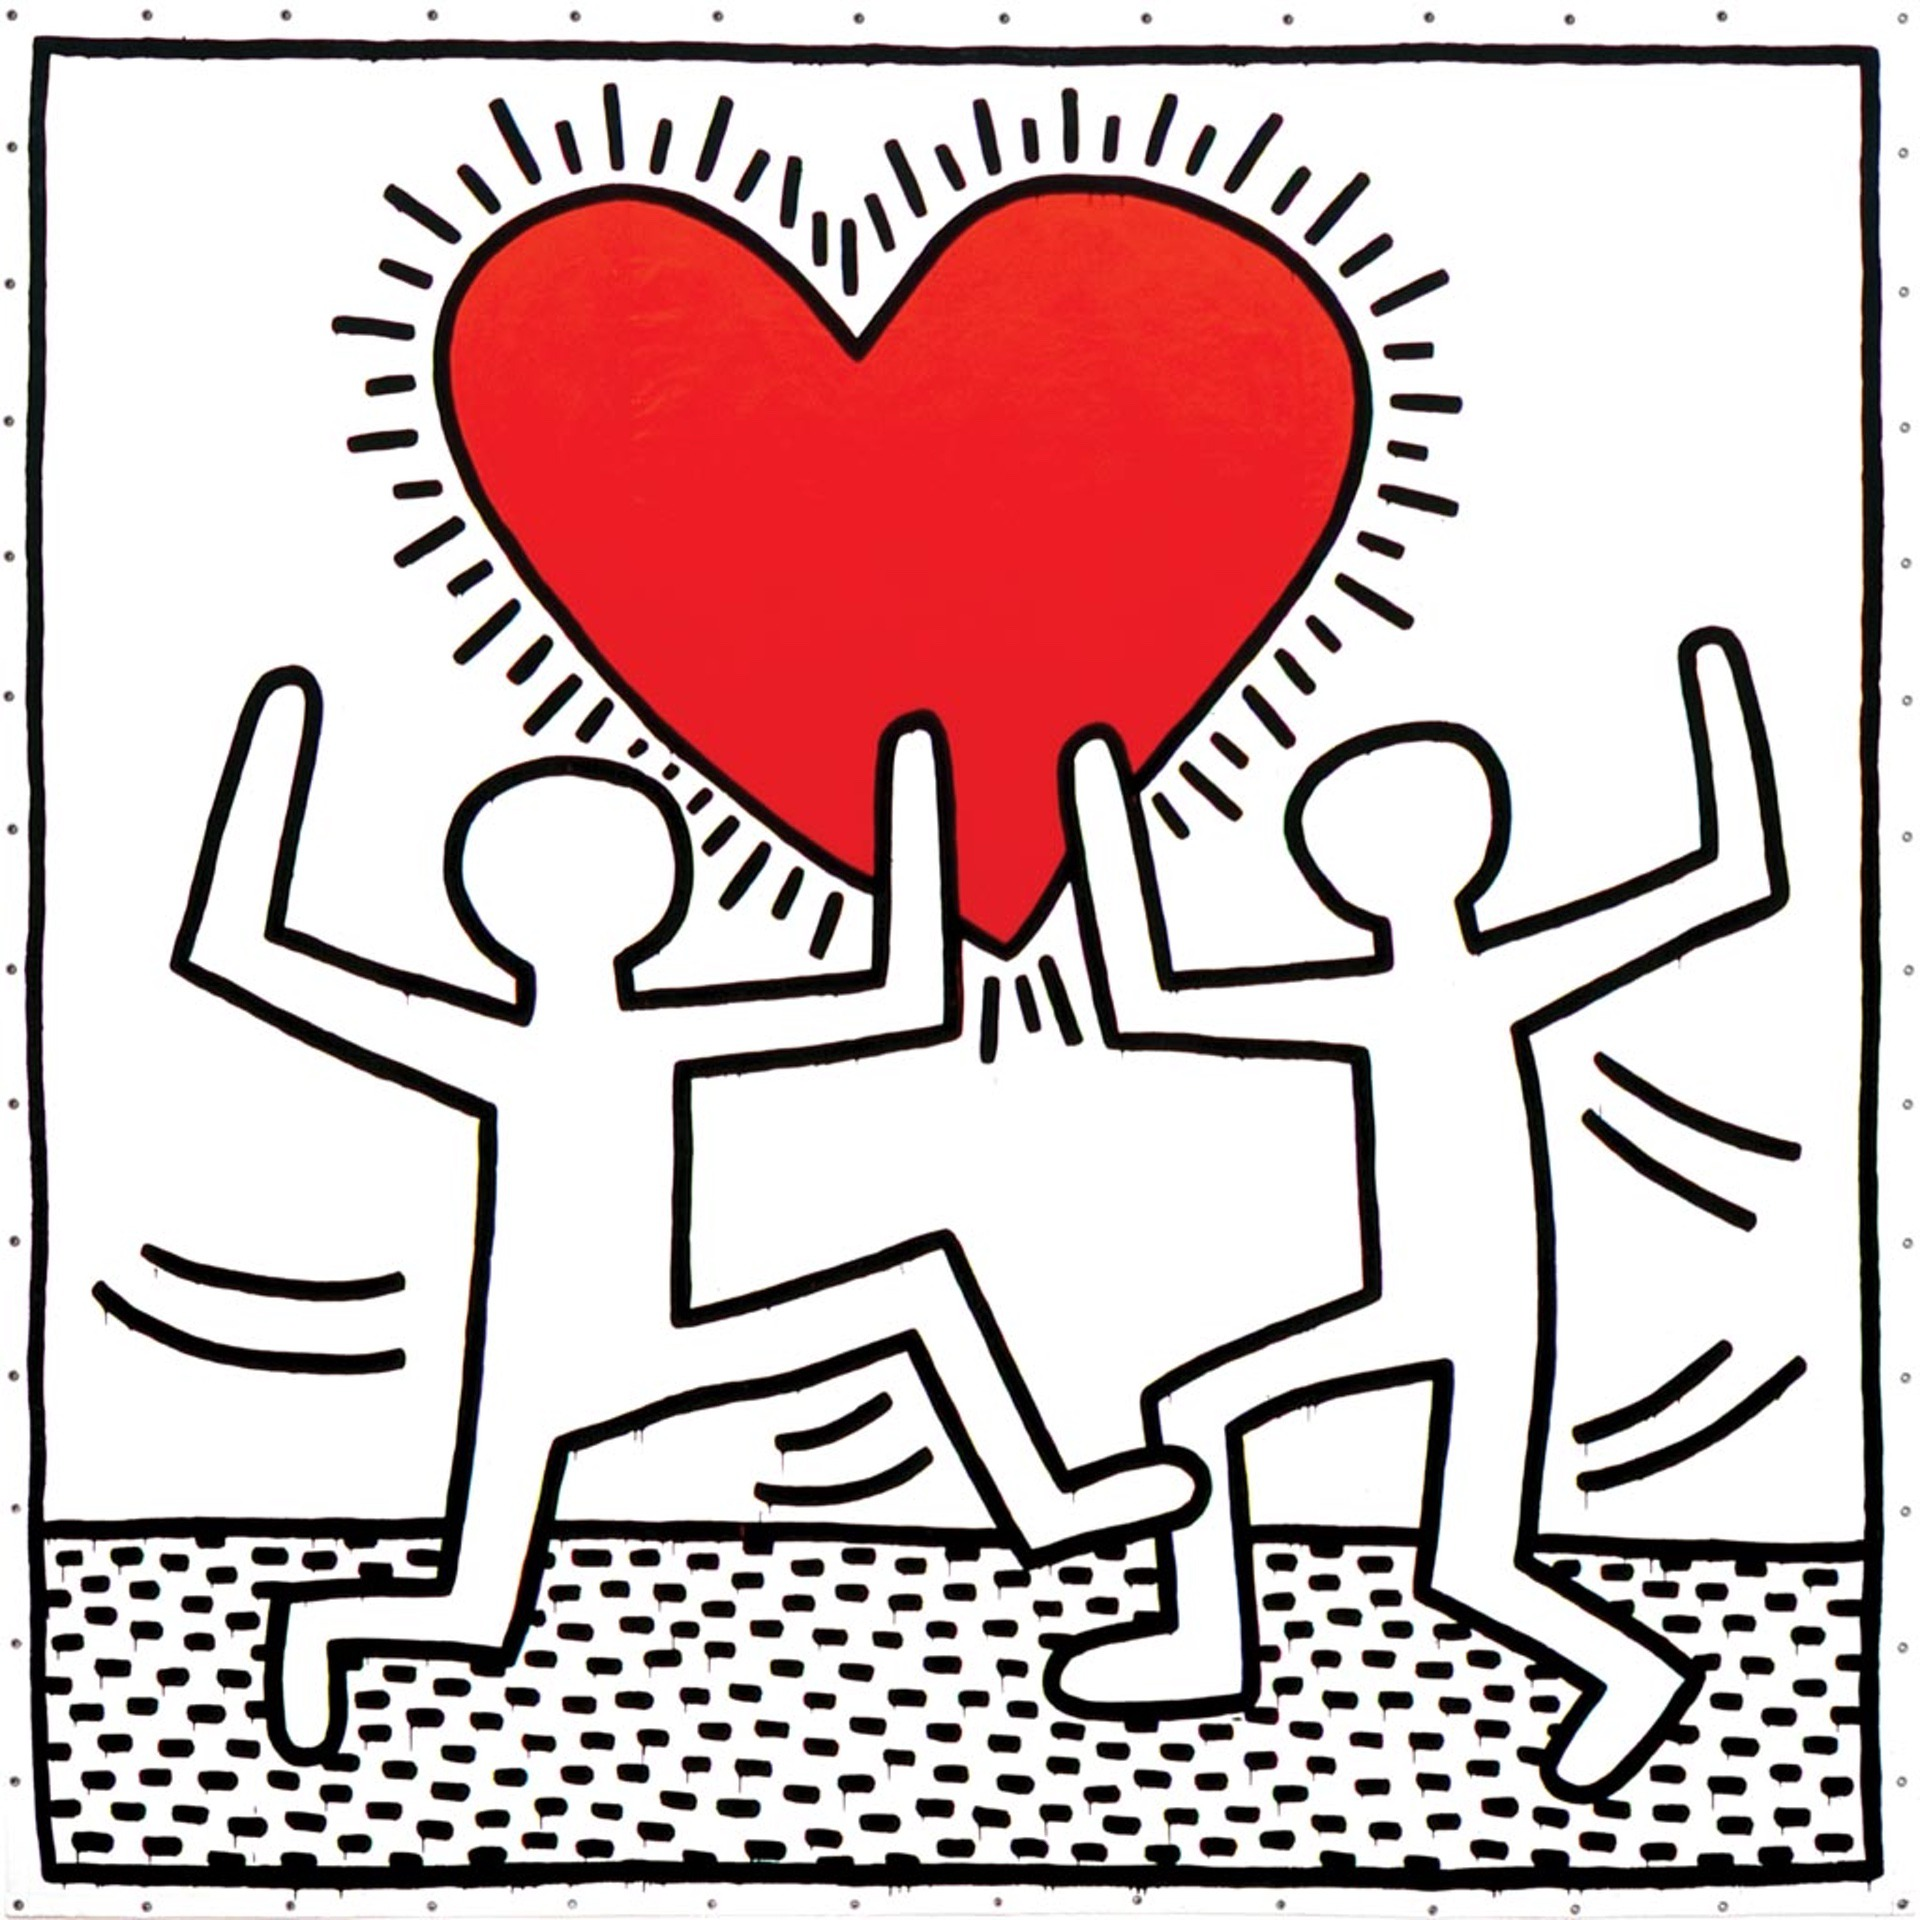 More Keith Haring